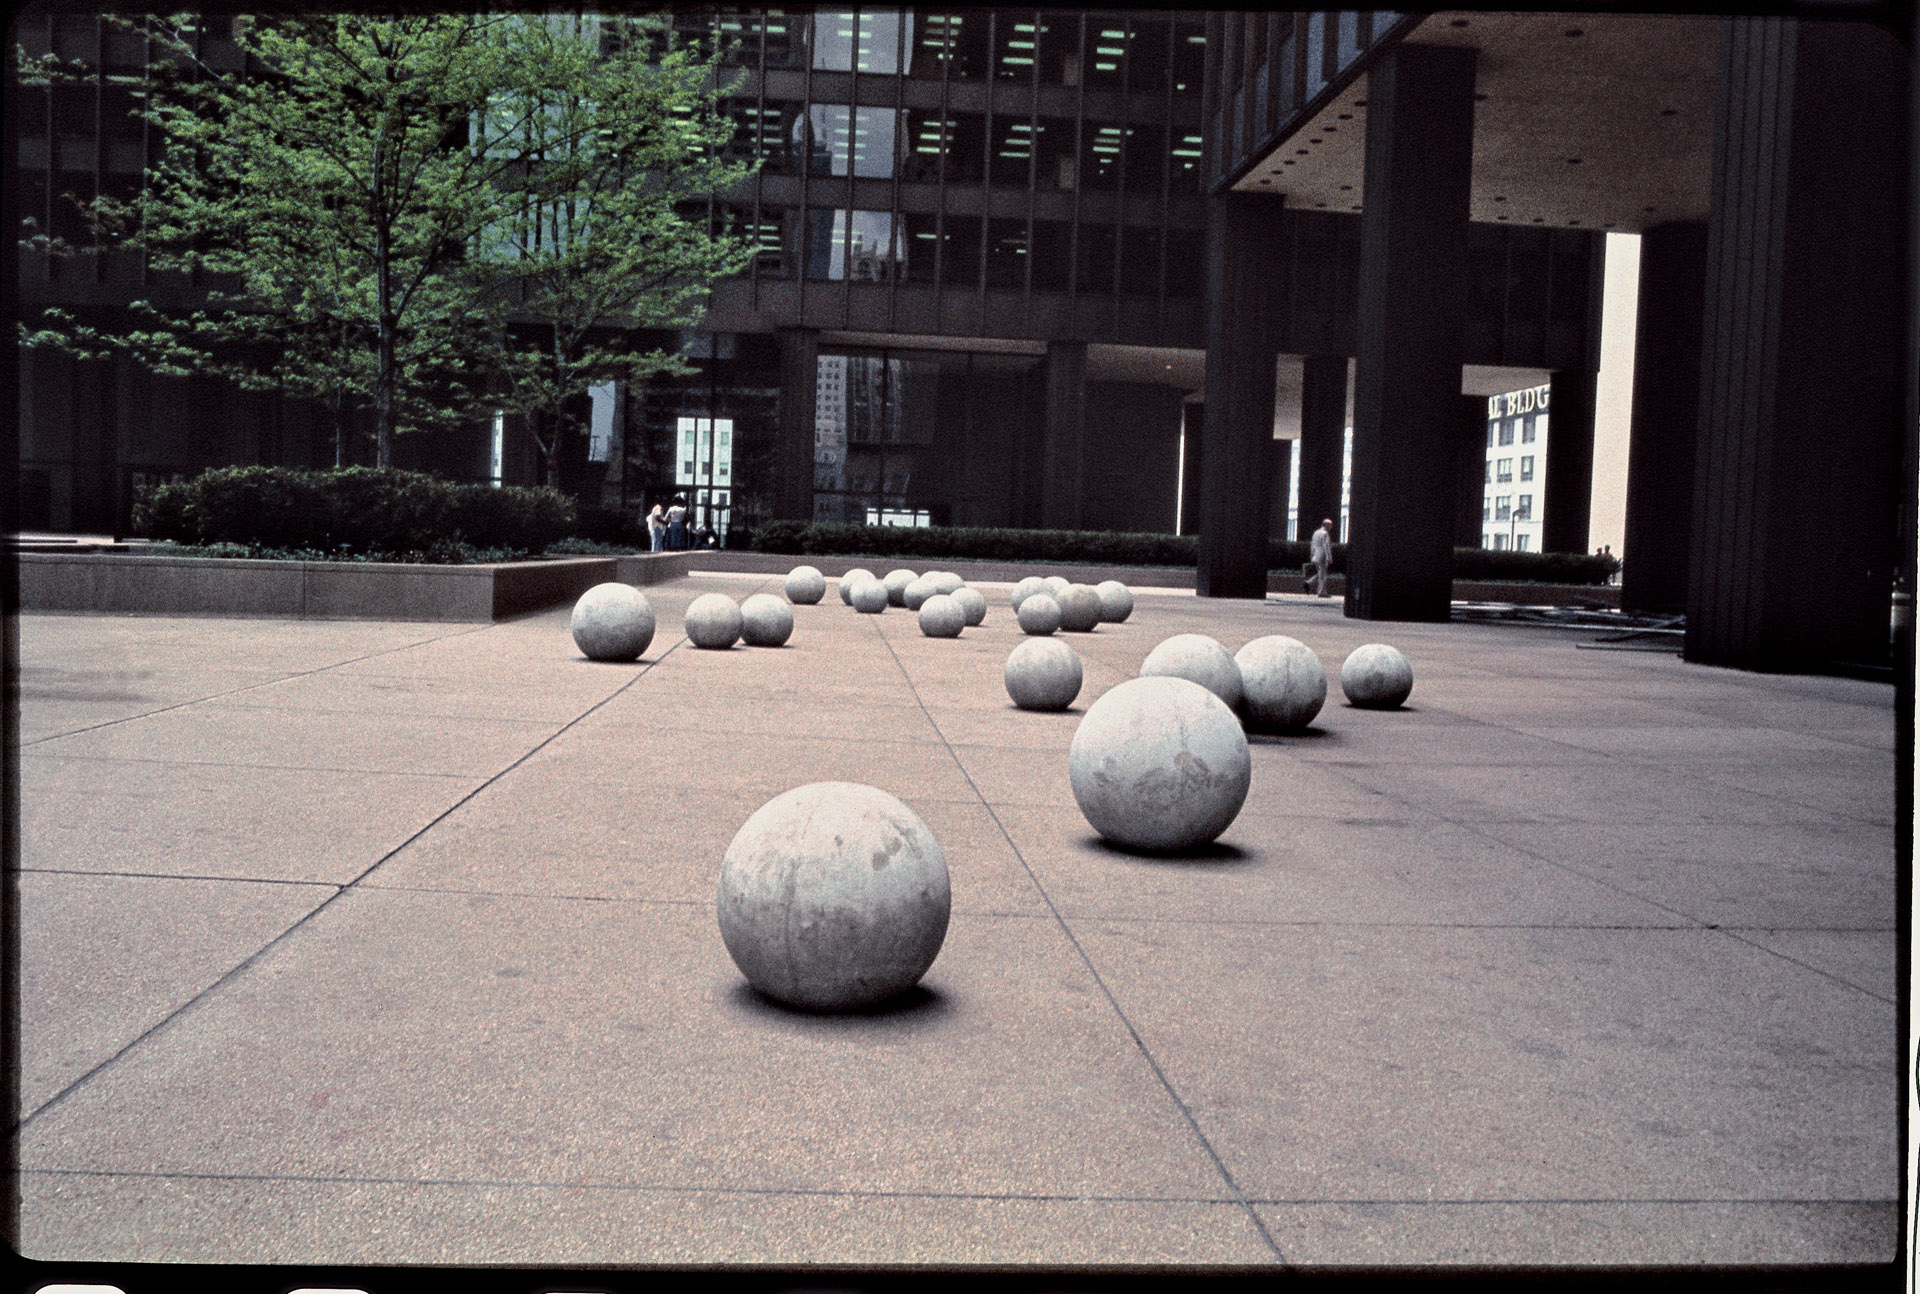 October 20, 2018 | The Lifespan of Public Art: A Humanities Day Conversation with Virginio Ferrari and Andrei Pop | part of Dialogo: Virginio Ferrari and Chicago, Fall 2018 Public Programs, UChicago